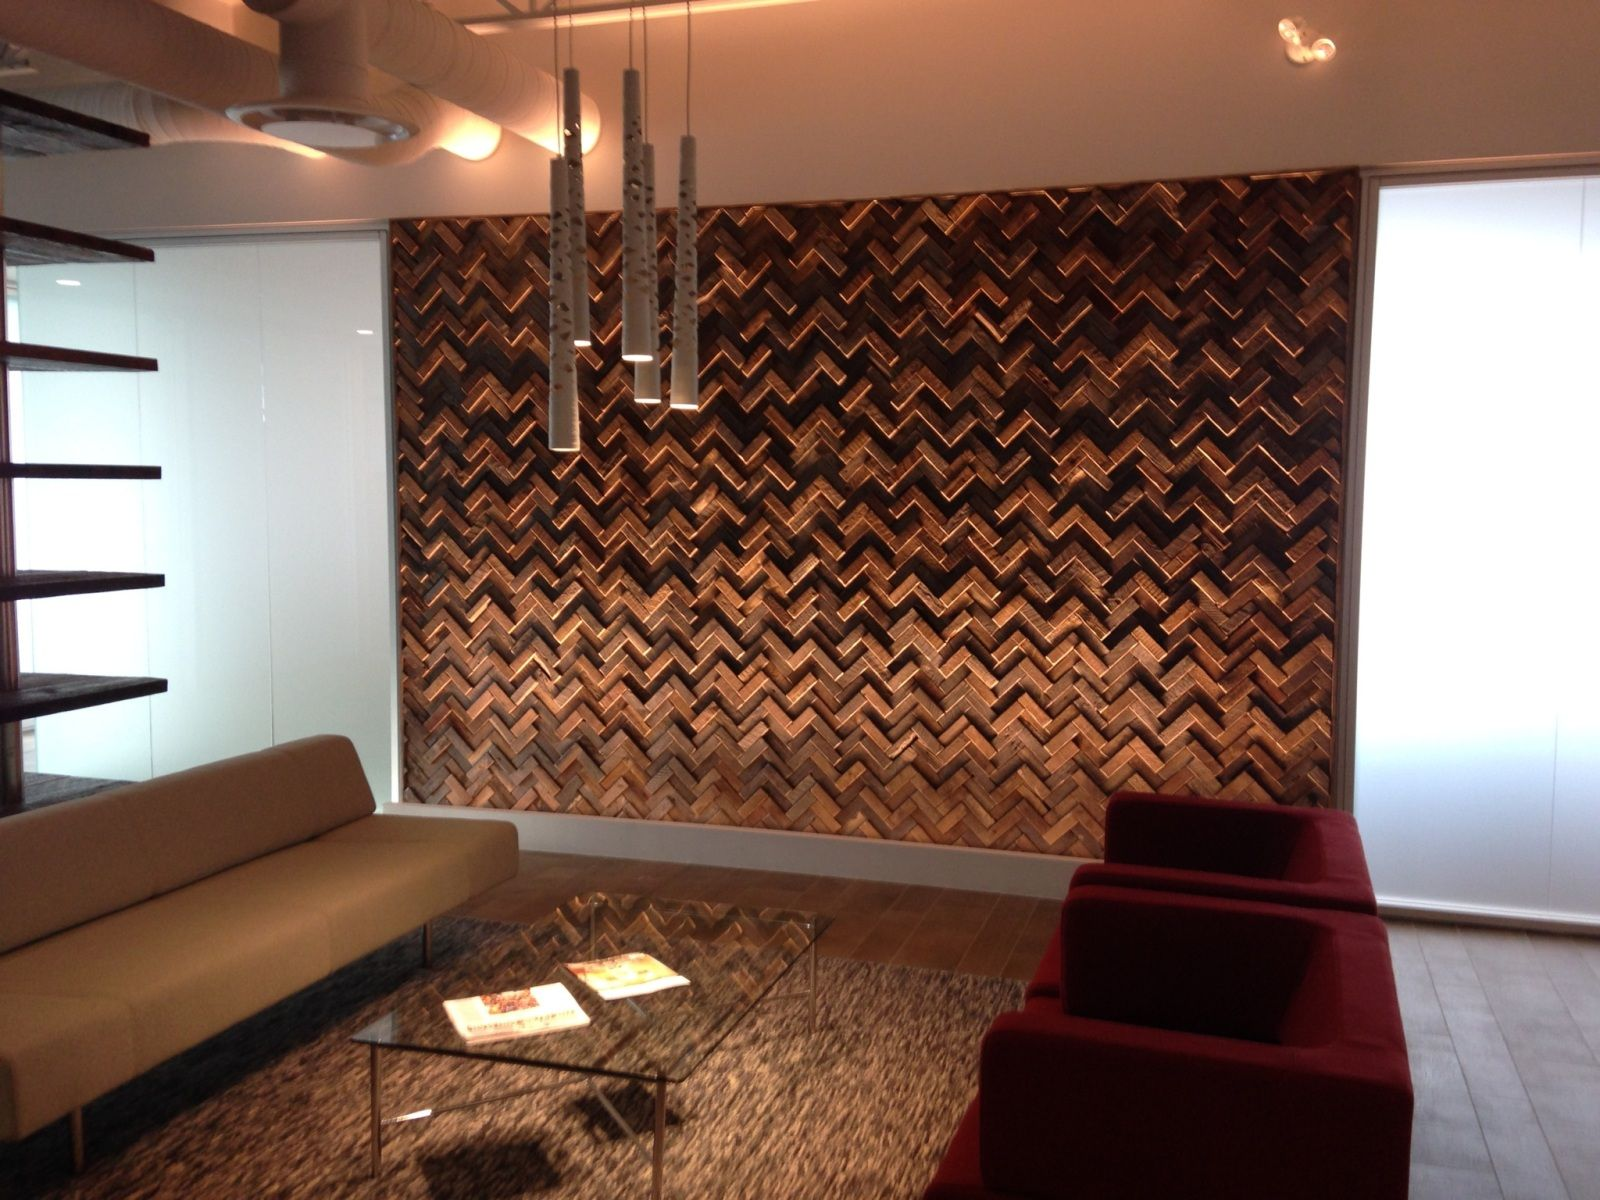 Effigy of Unique Wood Wall Covering Ideas | Interior Design Ideas ...